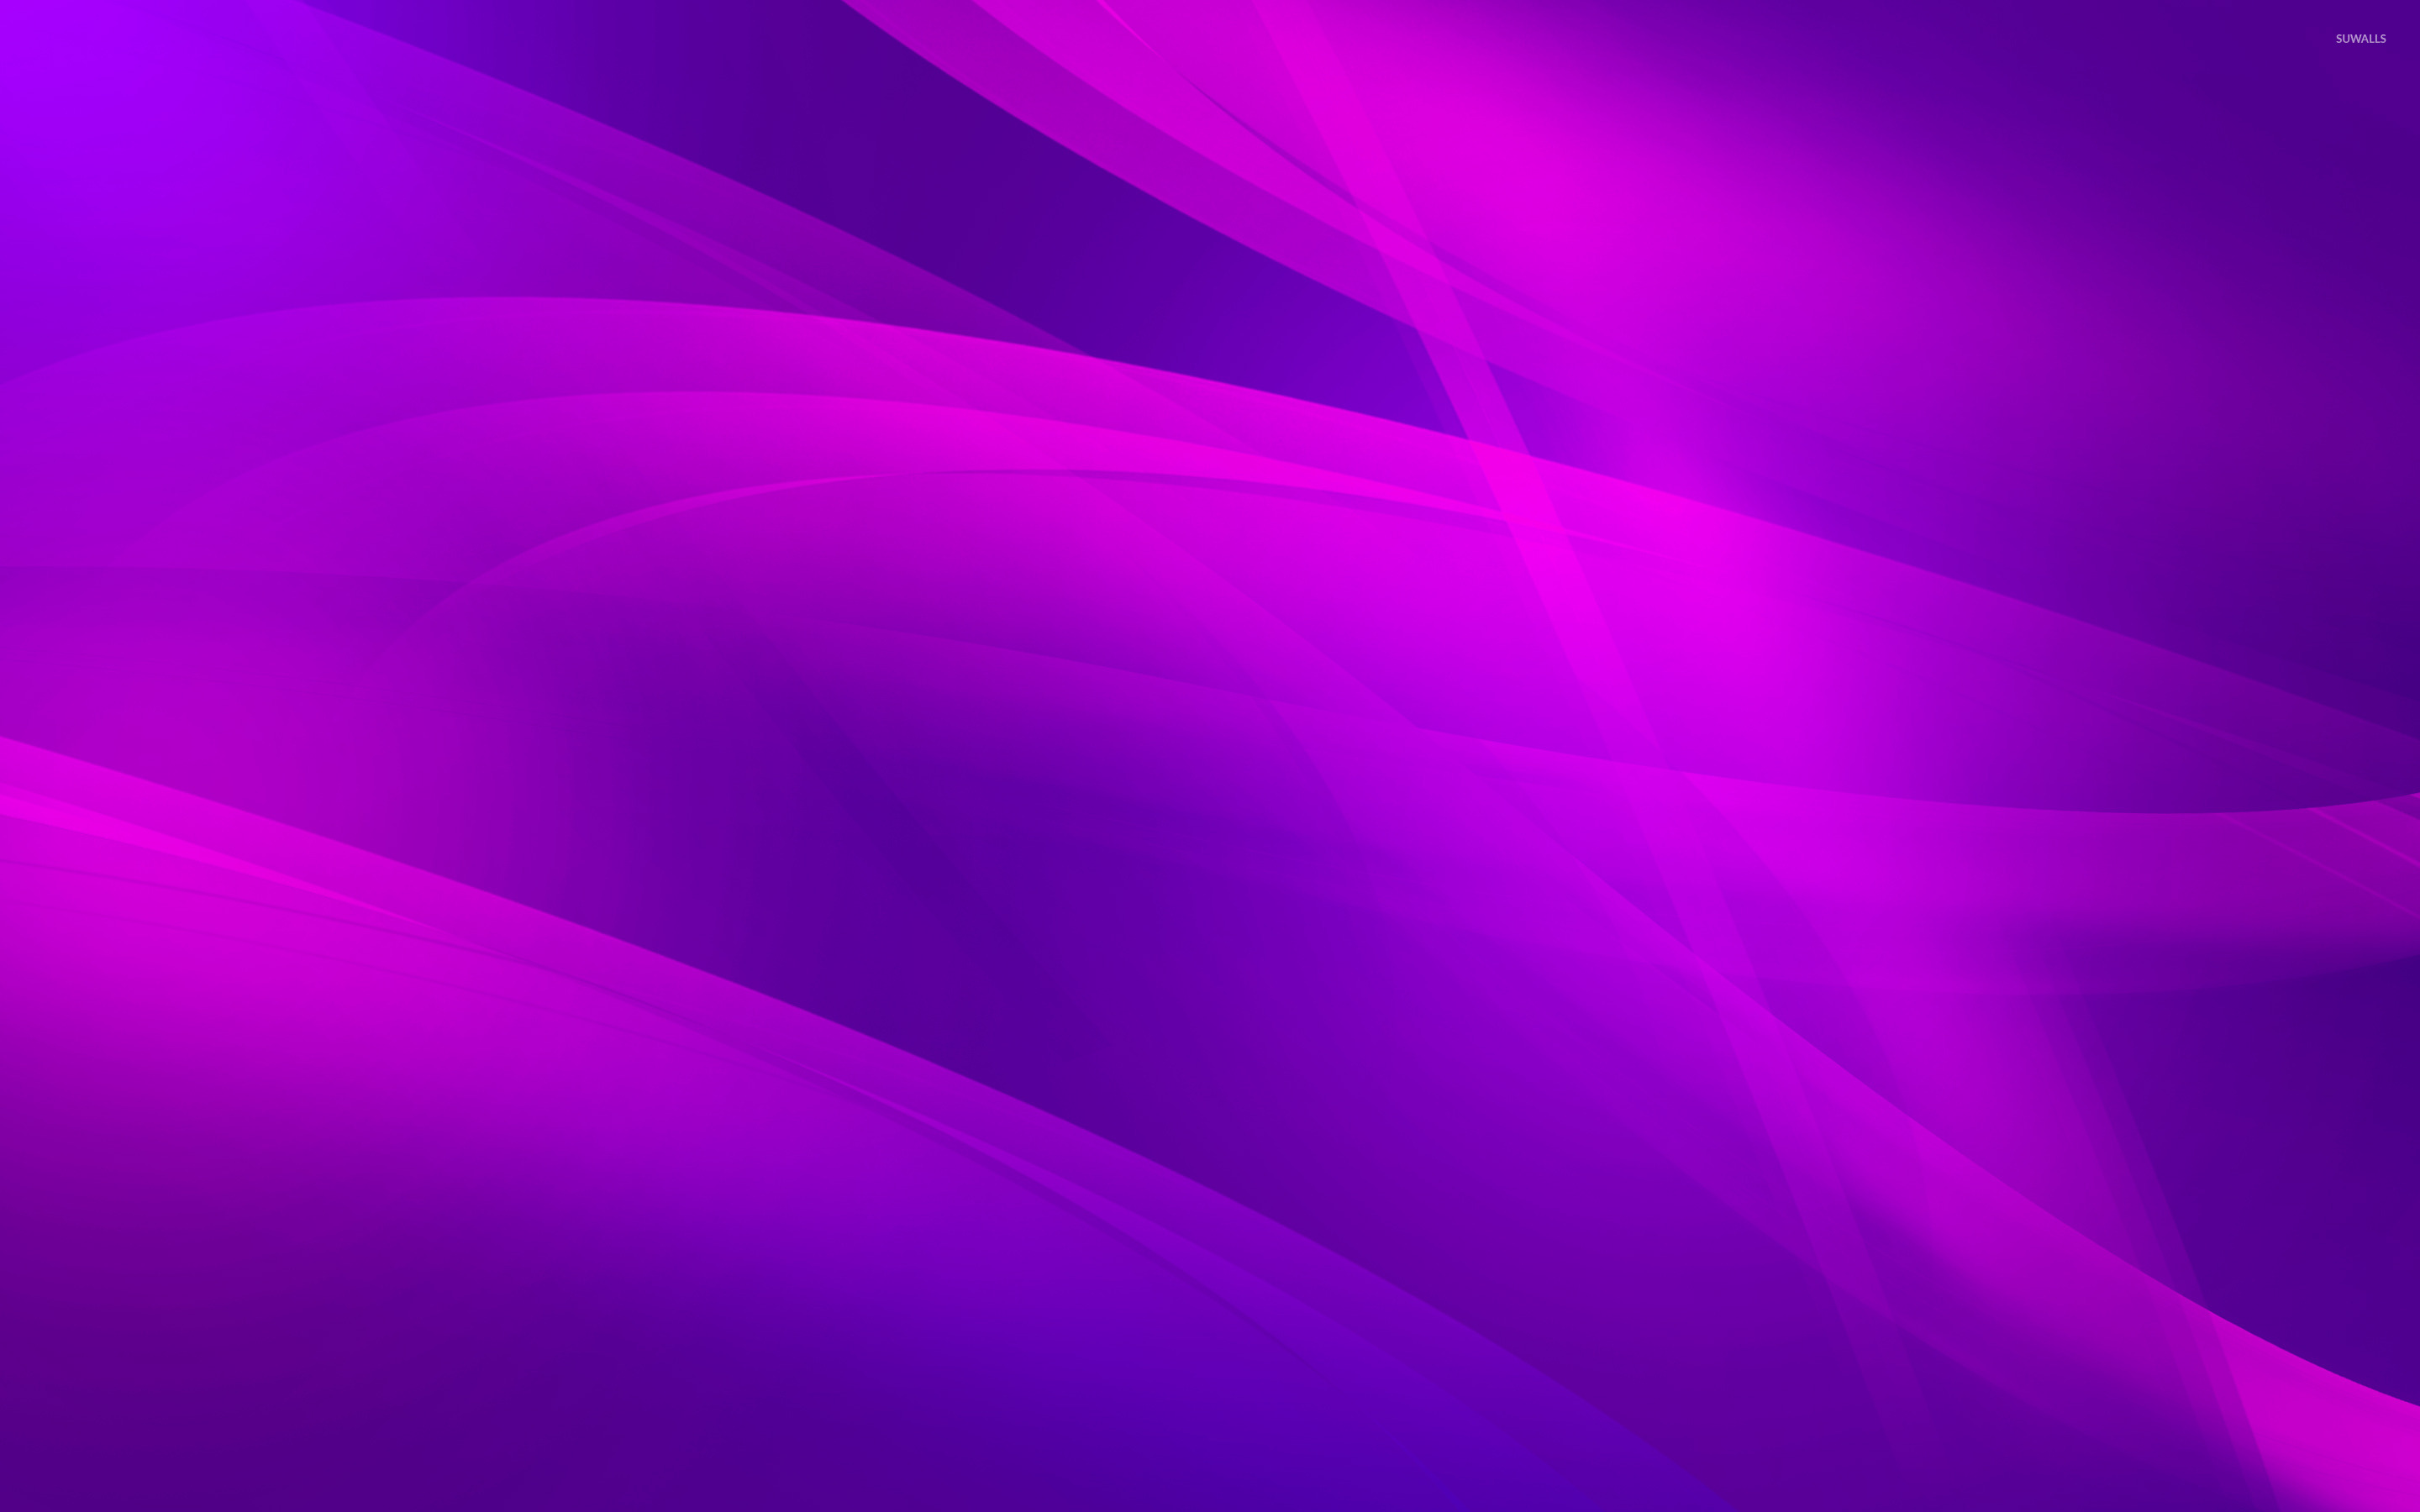 Pink curves on purple wallpaper abstract wallpapers 24510 for Pink wallpaper for walls